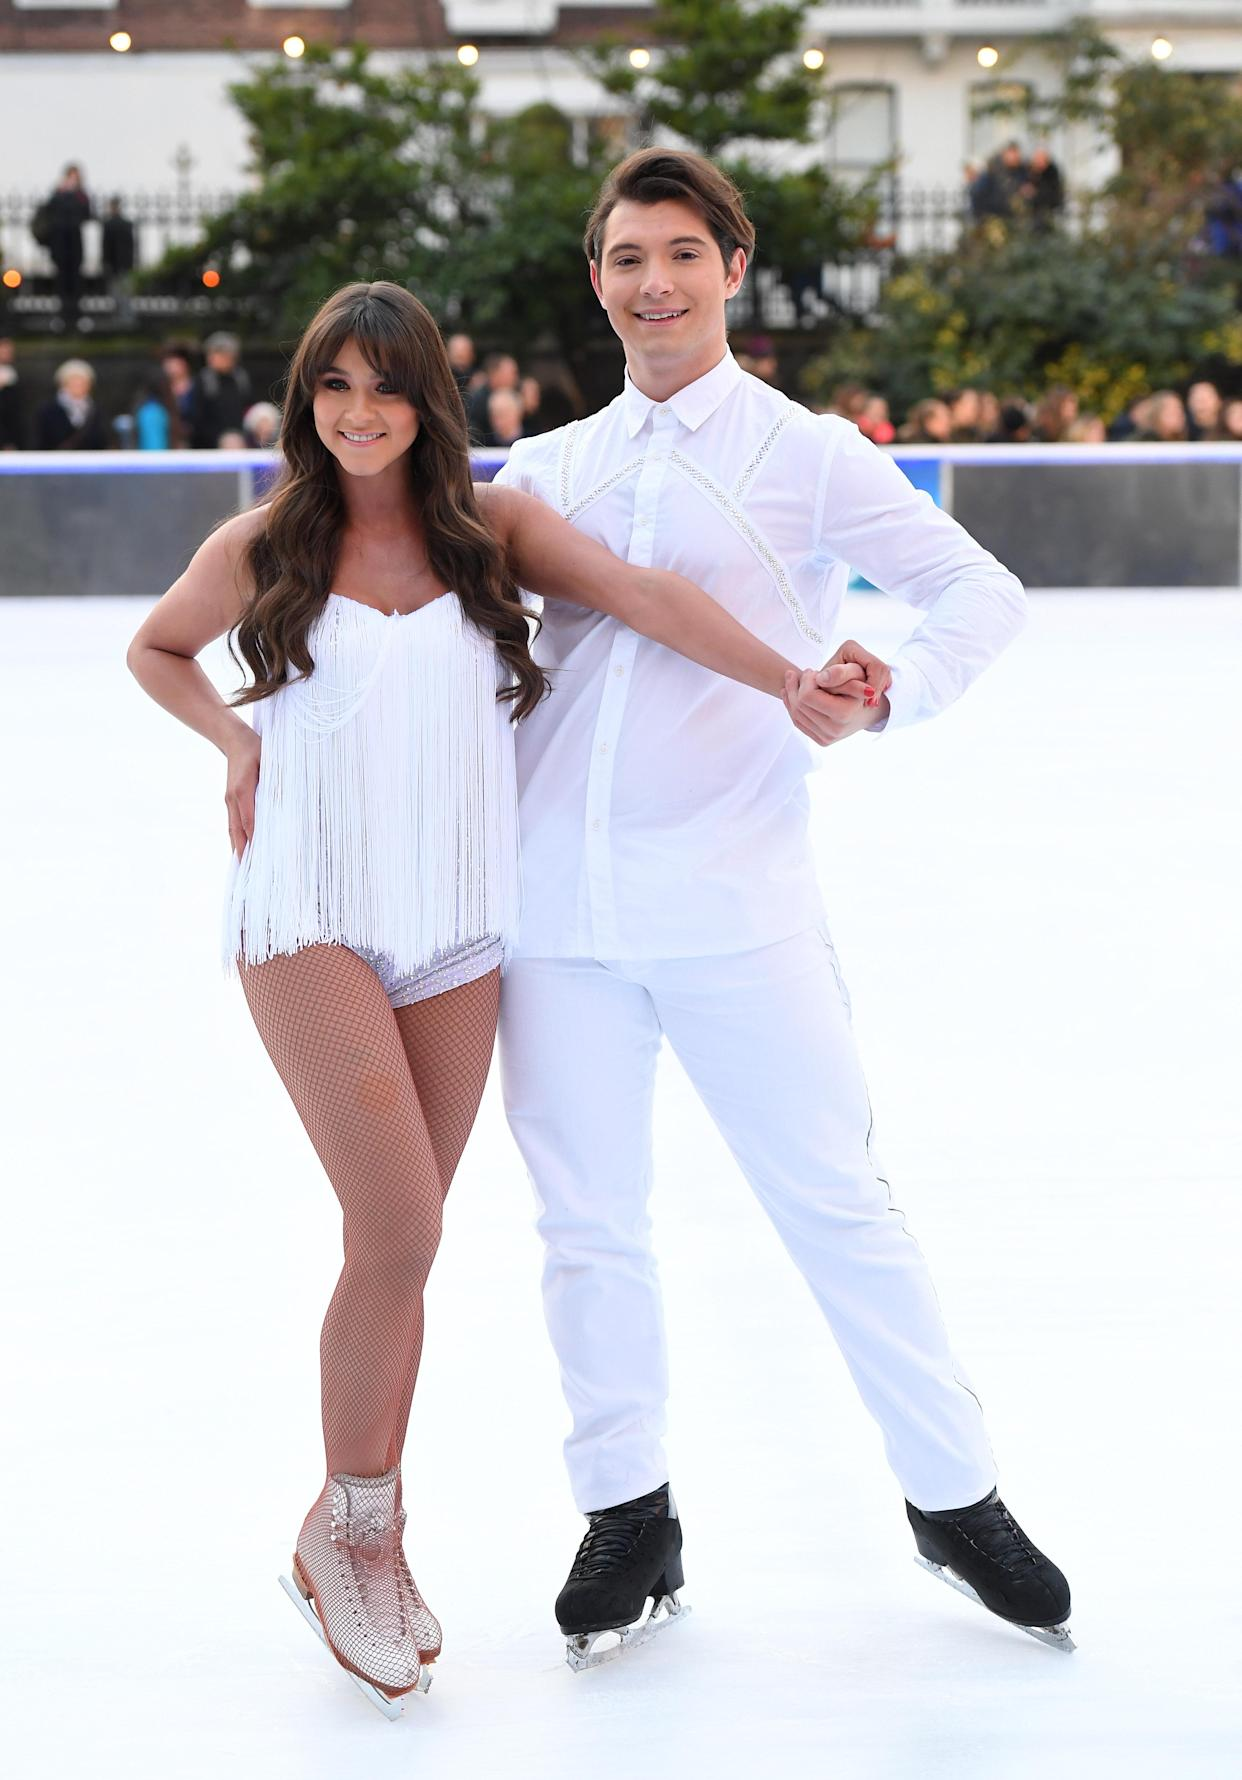 LONDON, ENGLAND - DECEMBER 19:  Brooke Vincent and Matej Silecky attend the Dancing On Ice 2018 photocall held at Natural History Museum Ice Rink on December 19, 2017 in London, England.  (Photo by Karwai Tang/WireImage)